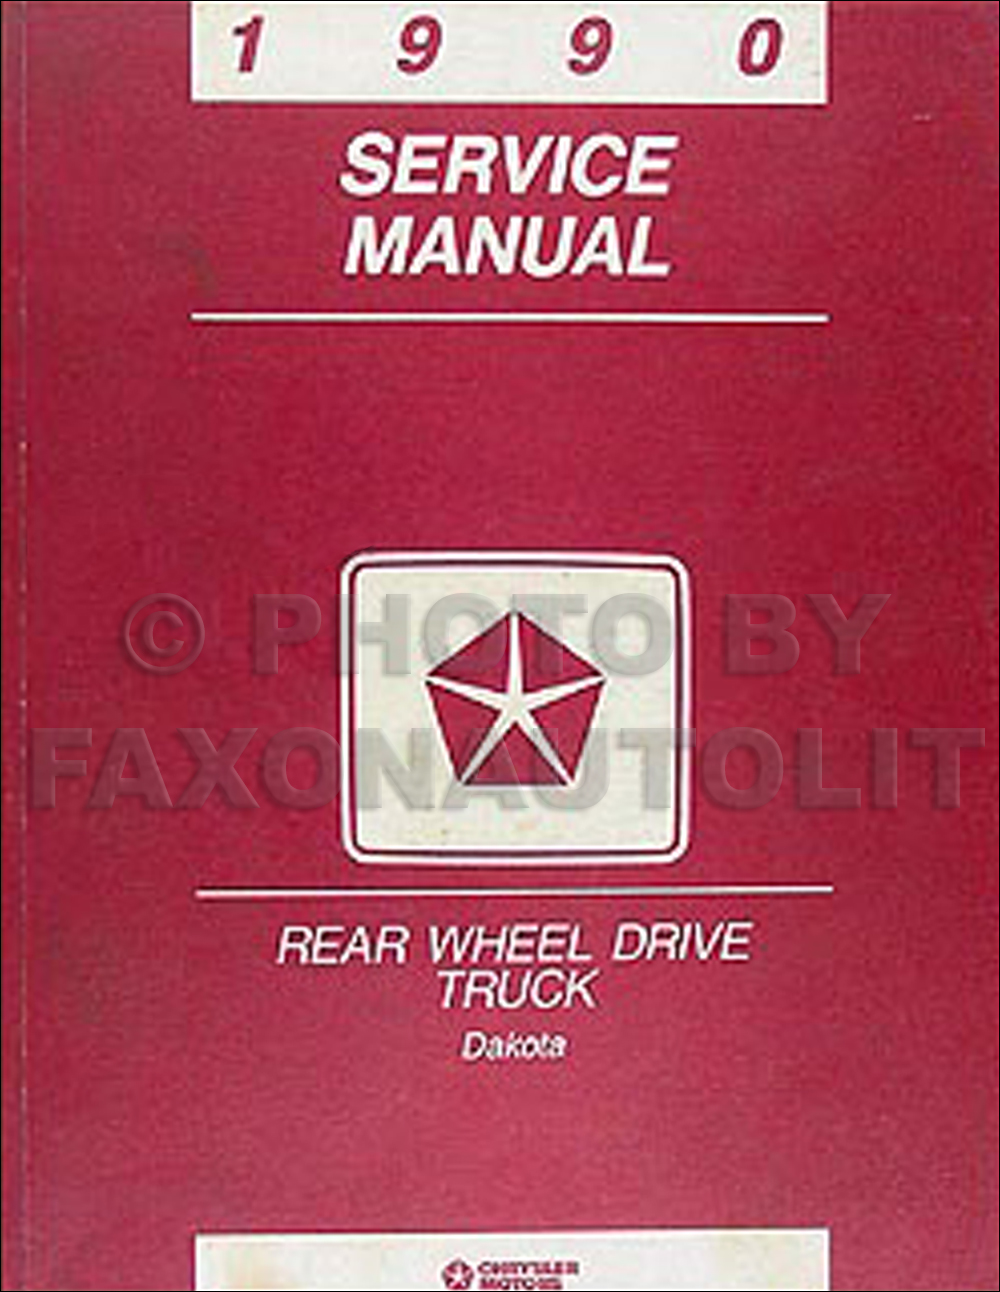 1990 Dodge Dakota Repair Manual Original